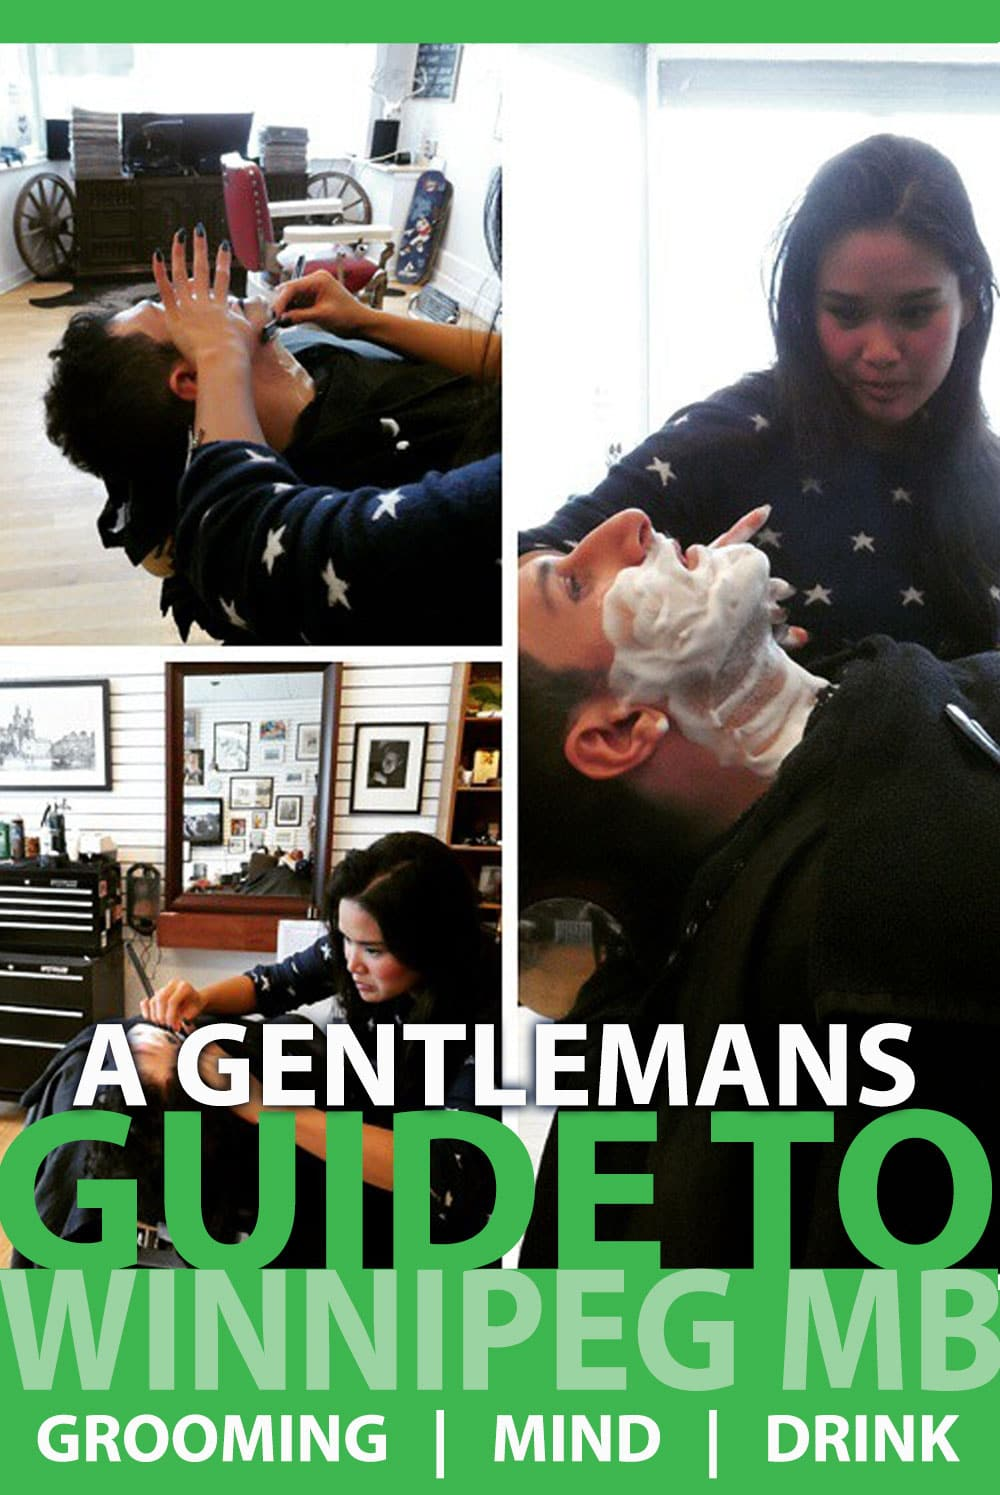 A Gentleman's Guide in Winnipeg Manitoba by Calculated Traveller